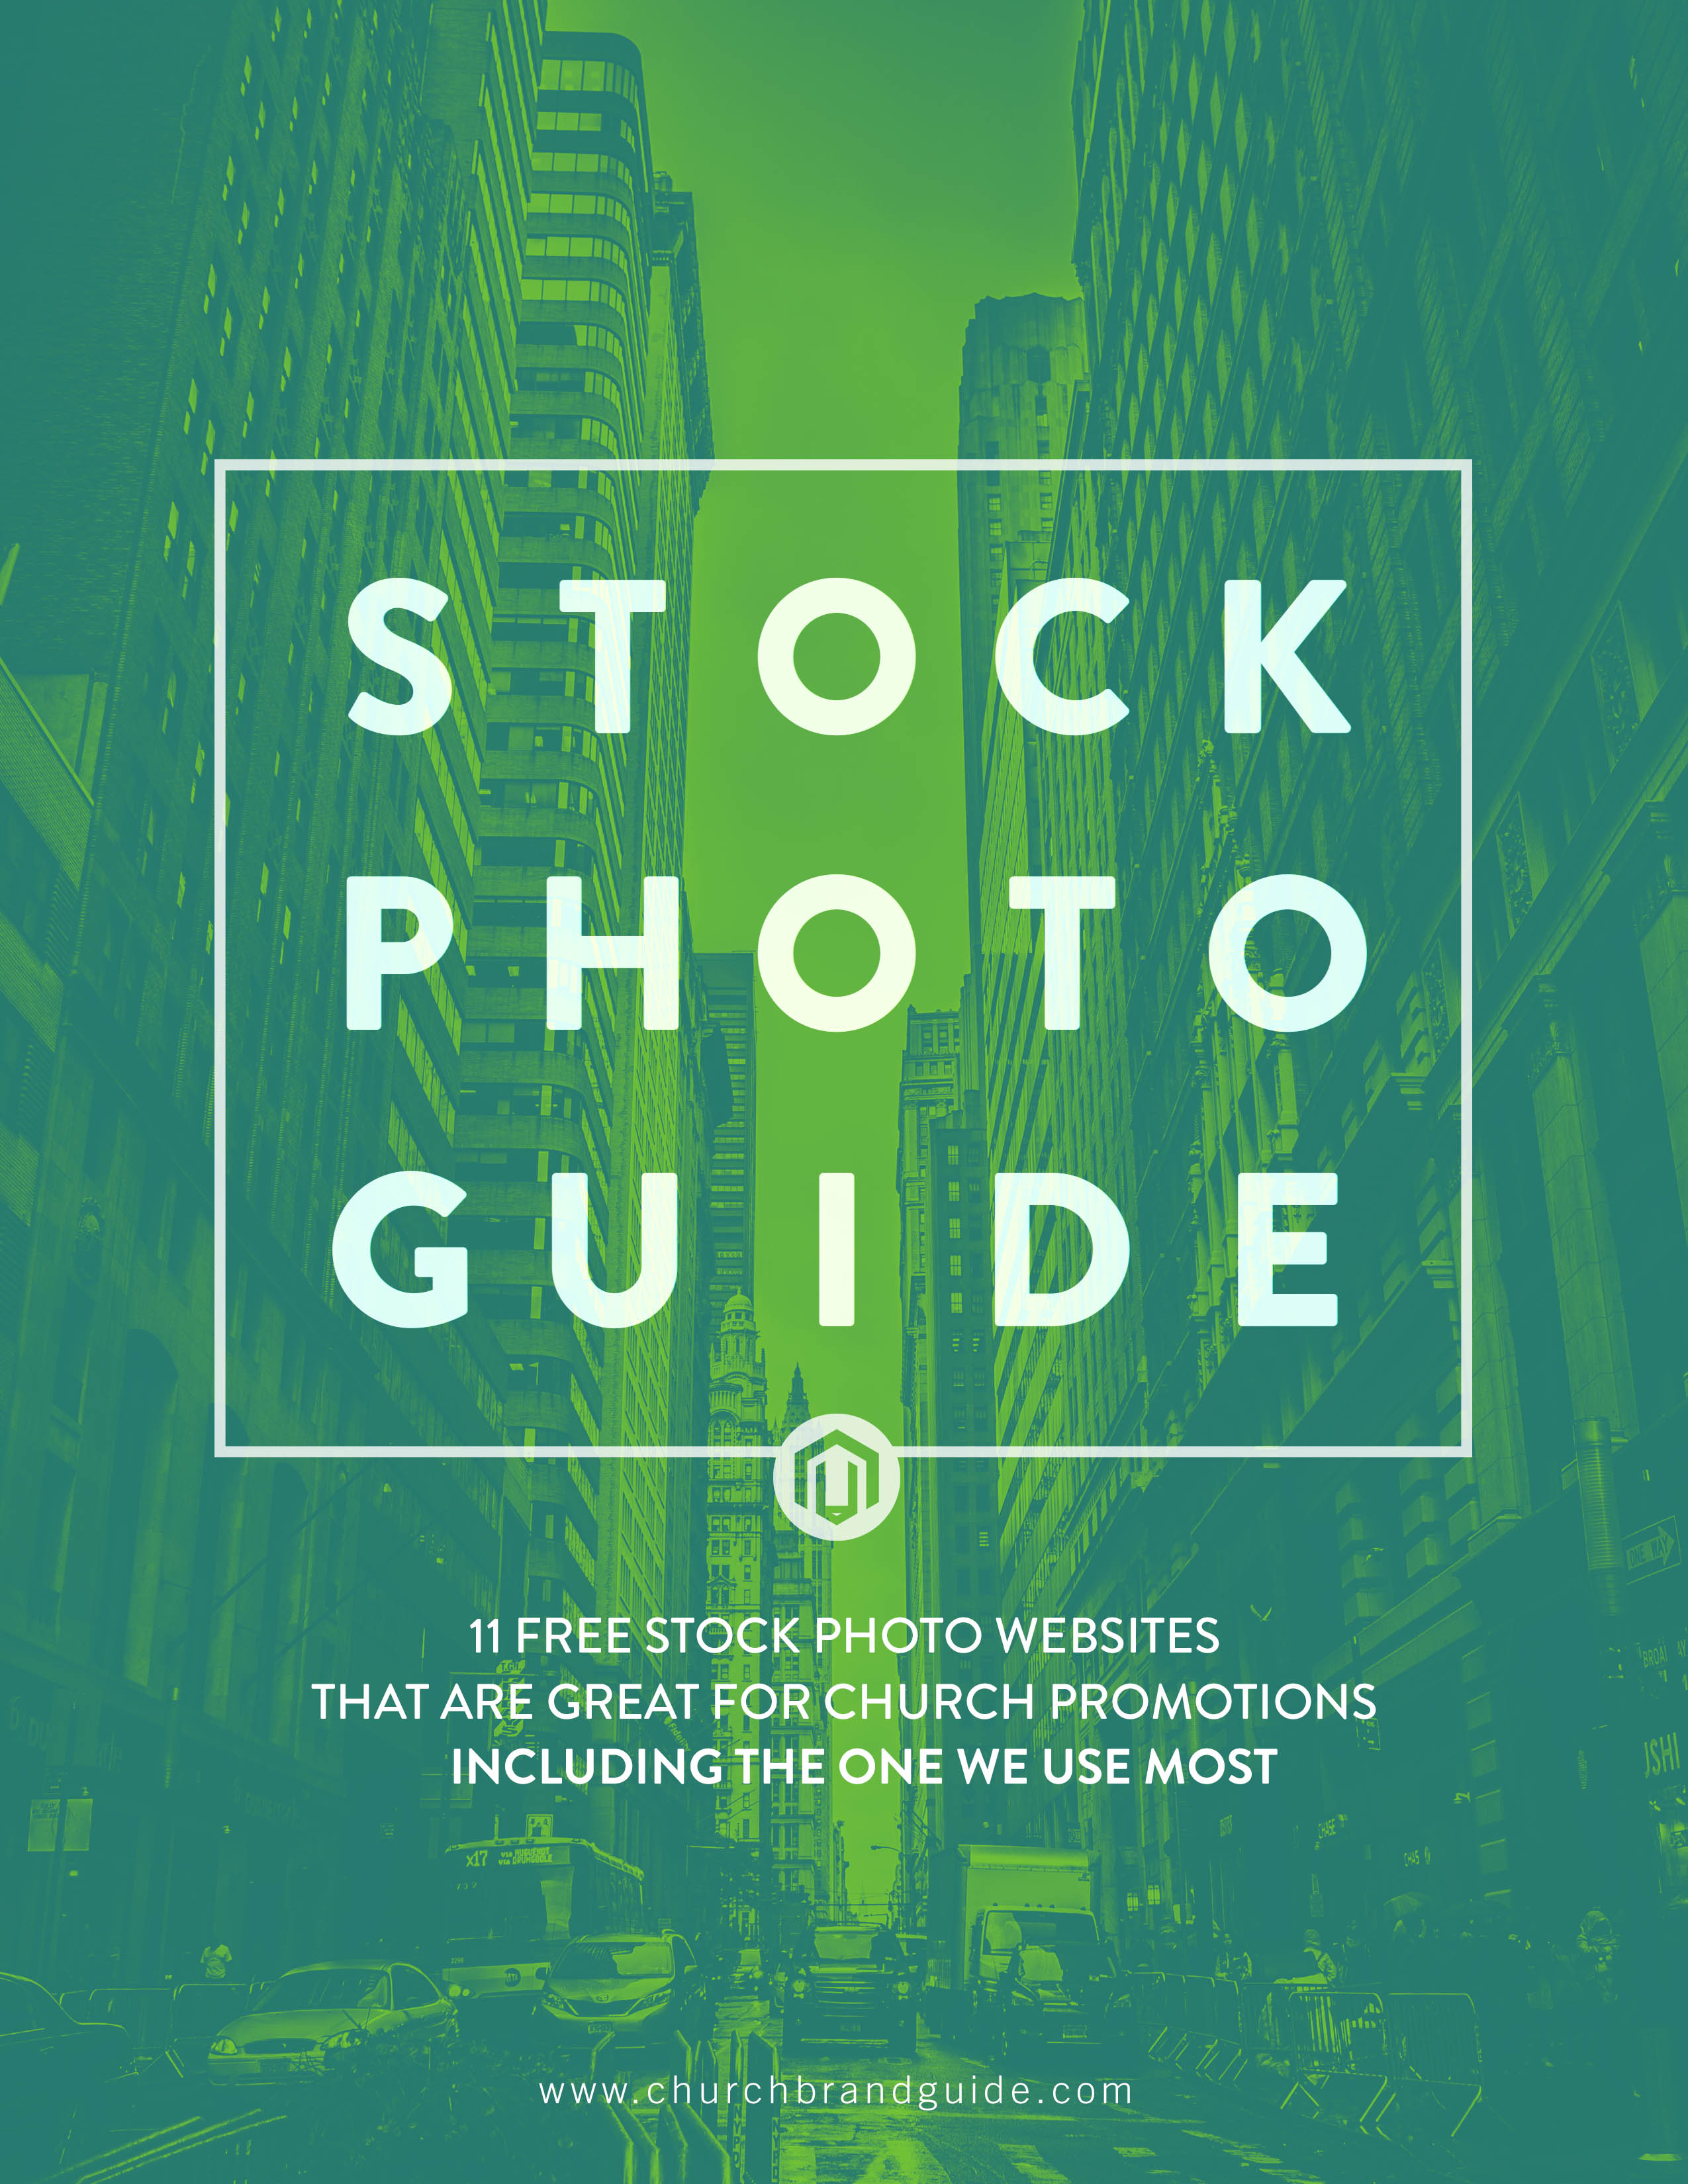 Stock Photo Guide - Church Brand Guide Resource